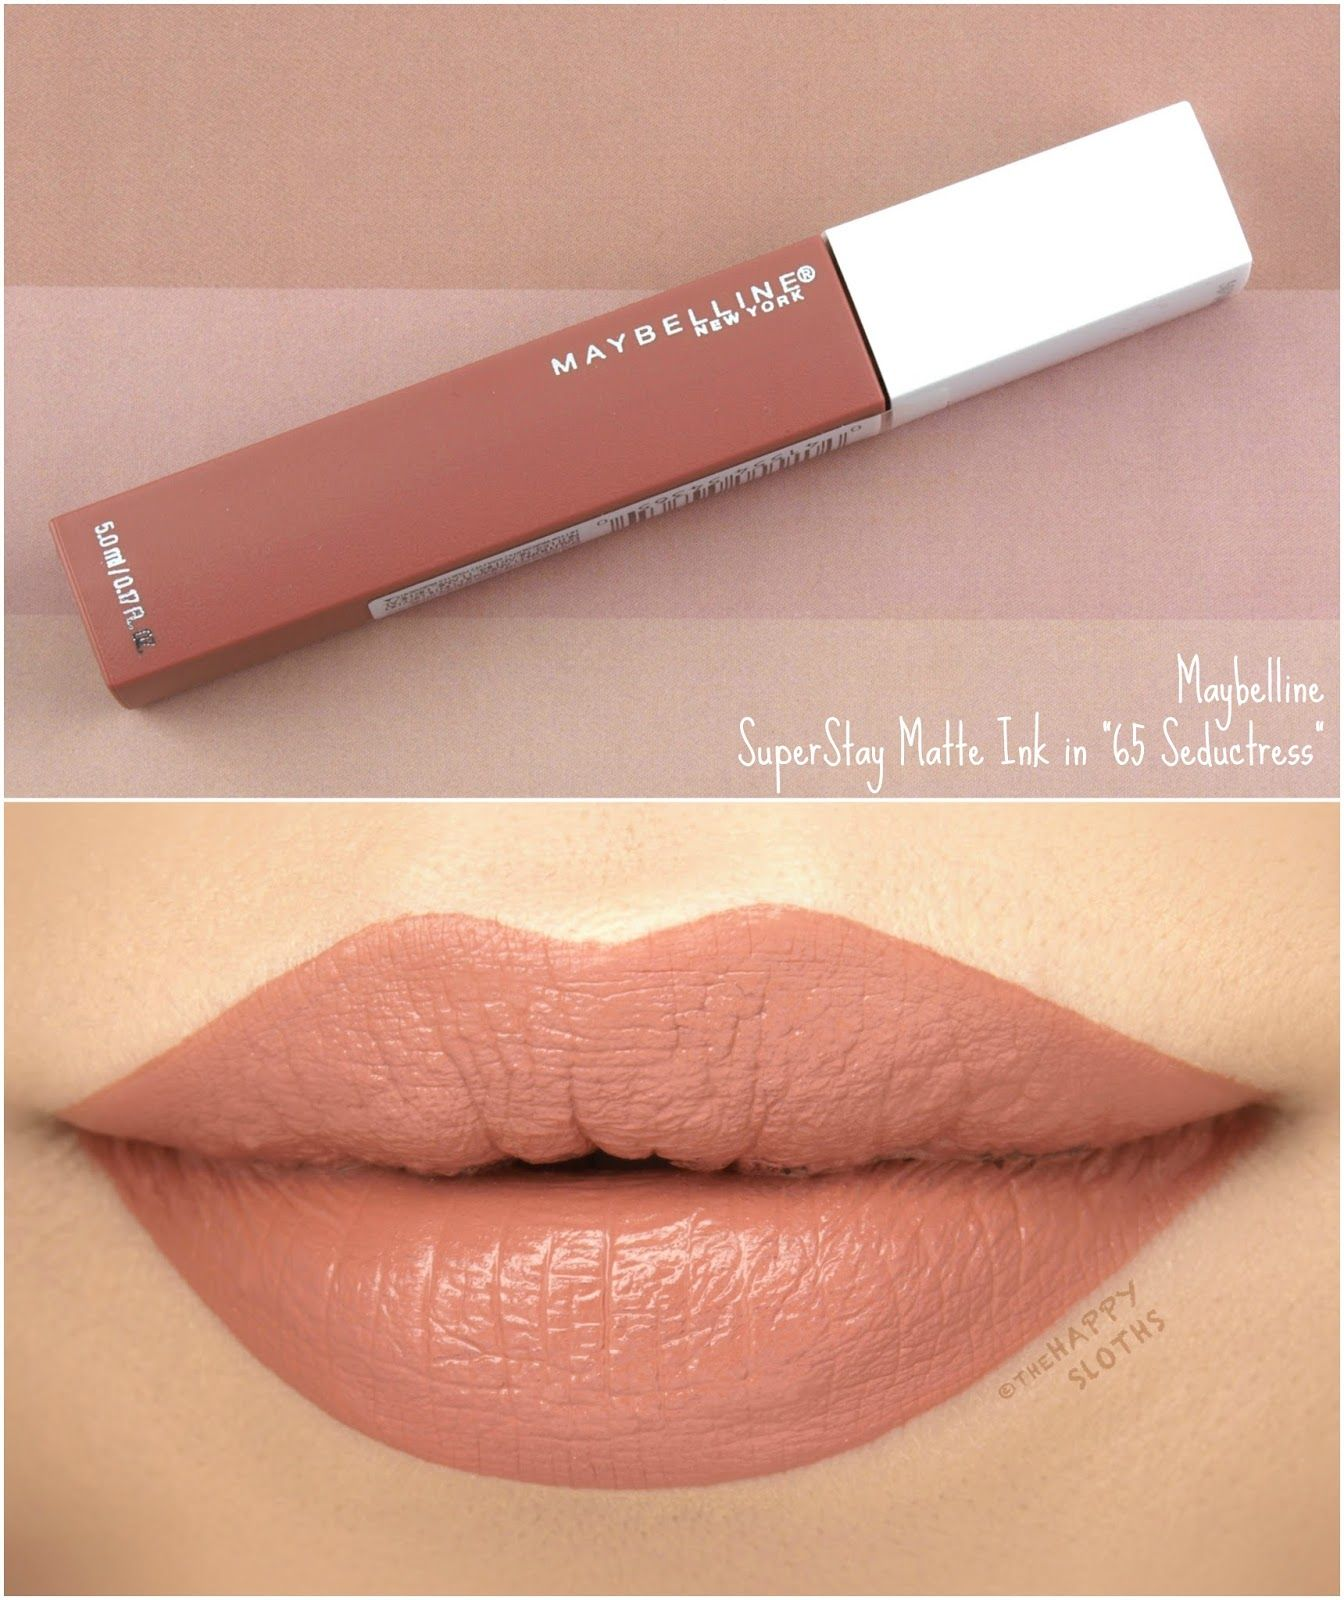 Maybelline In 2019 Maybelline Lipstick Maybelline Makeup